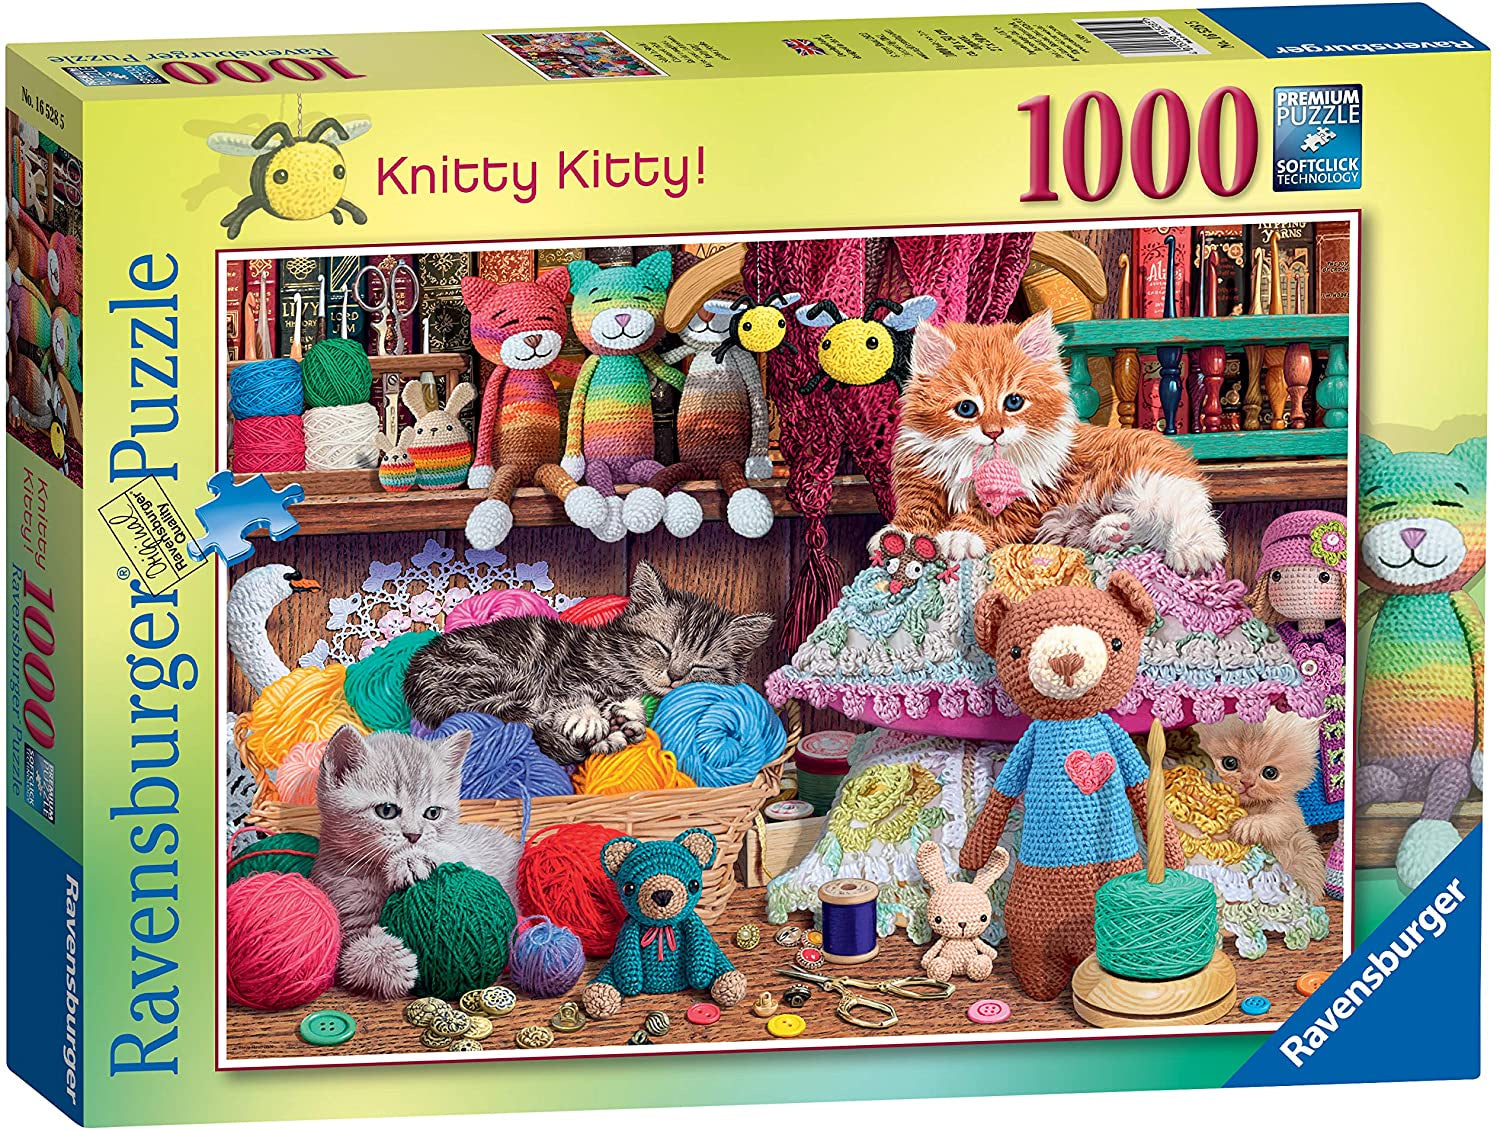 Ravensburger Knitty Kitty 1000pc Jigsaw Puzzle